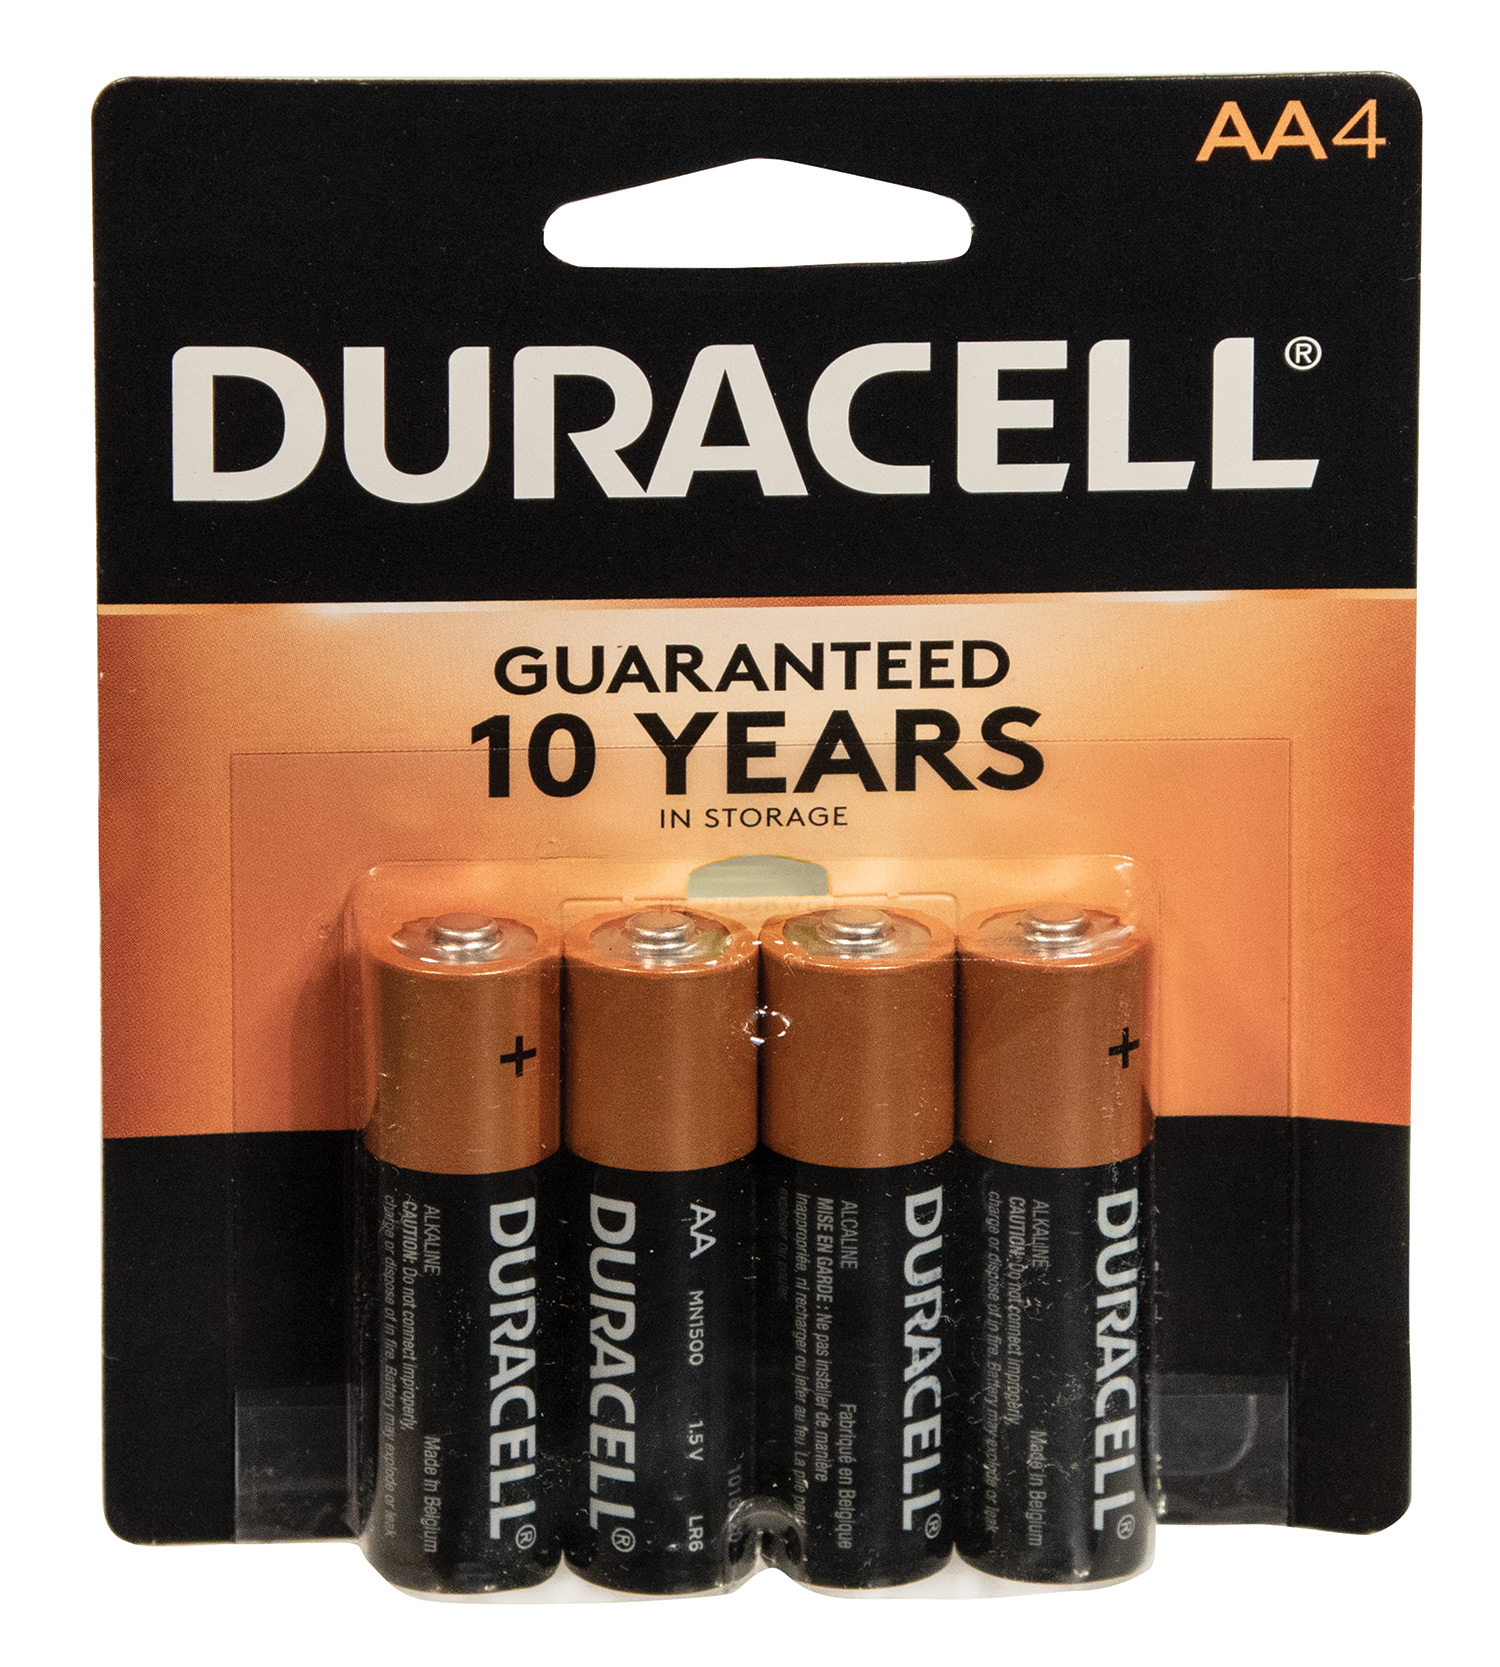 Duracell 4 AA Batteries